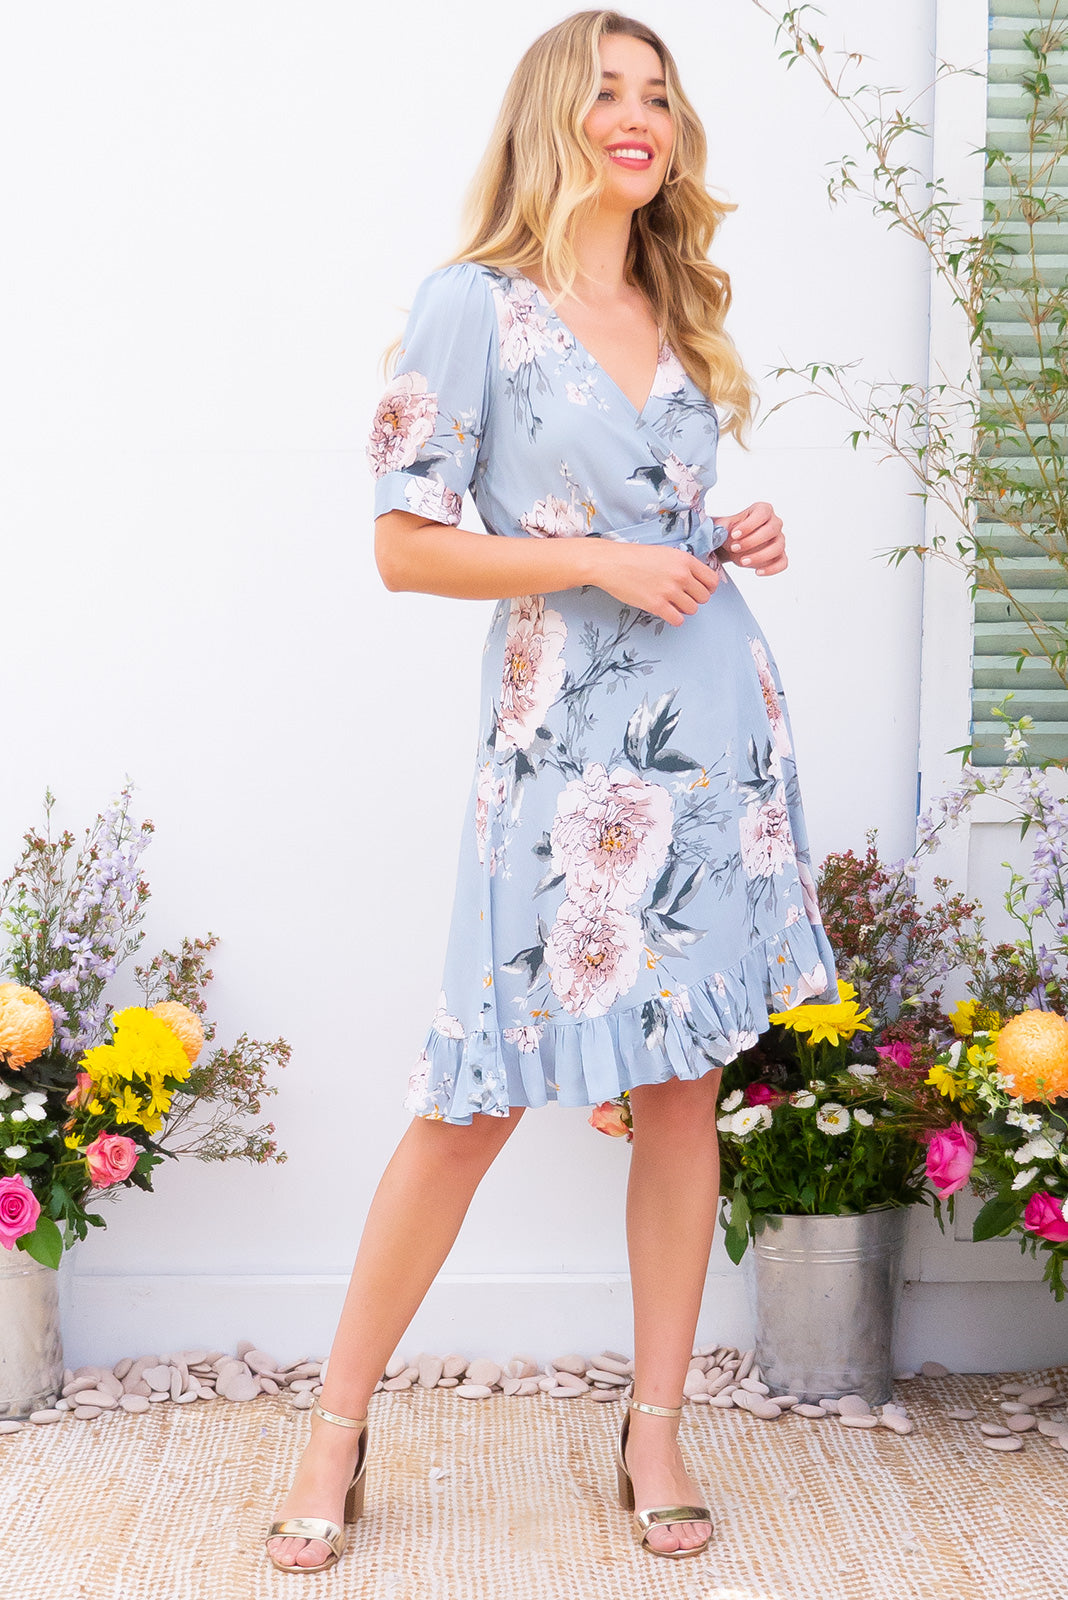 Antigua Powder Blue Maxi Wrap Dress in a 1940's inspired style with cuffed midi sleeves and a delicate hemline frill in a pastel steel blue and tonal romantic floral print on crinkle woven rayon